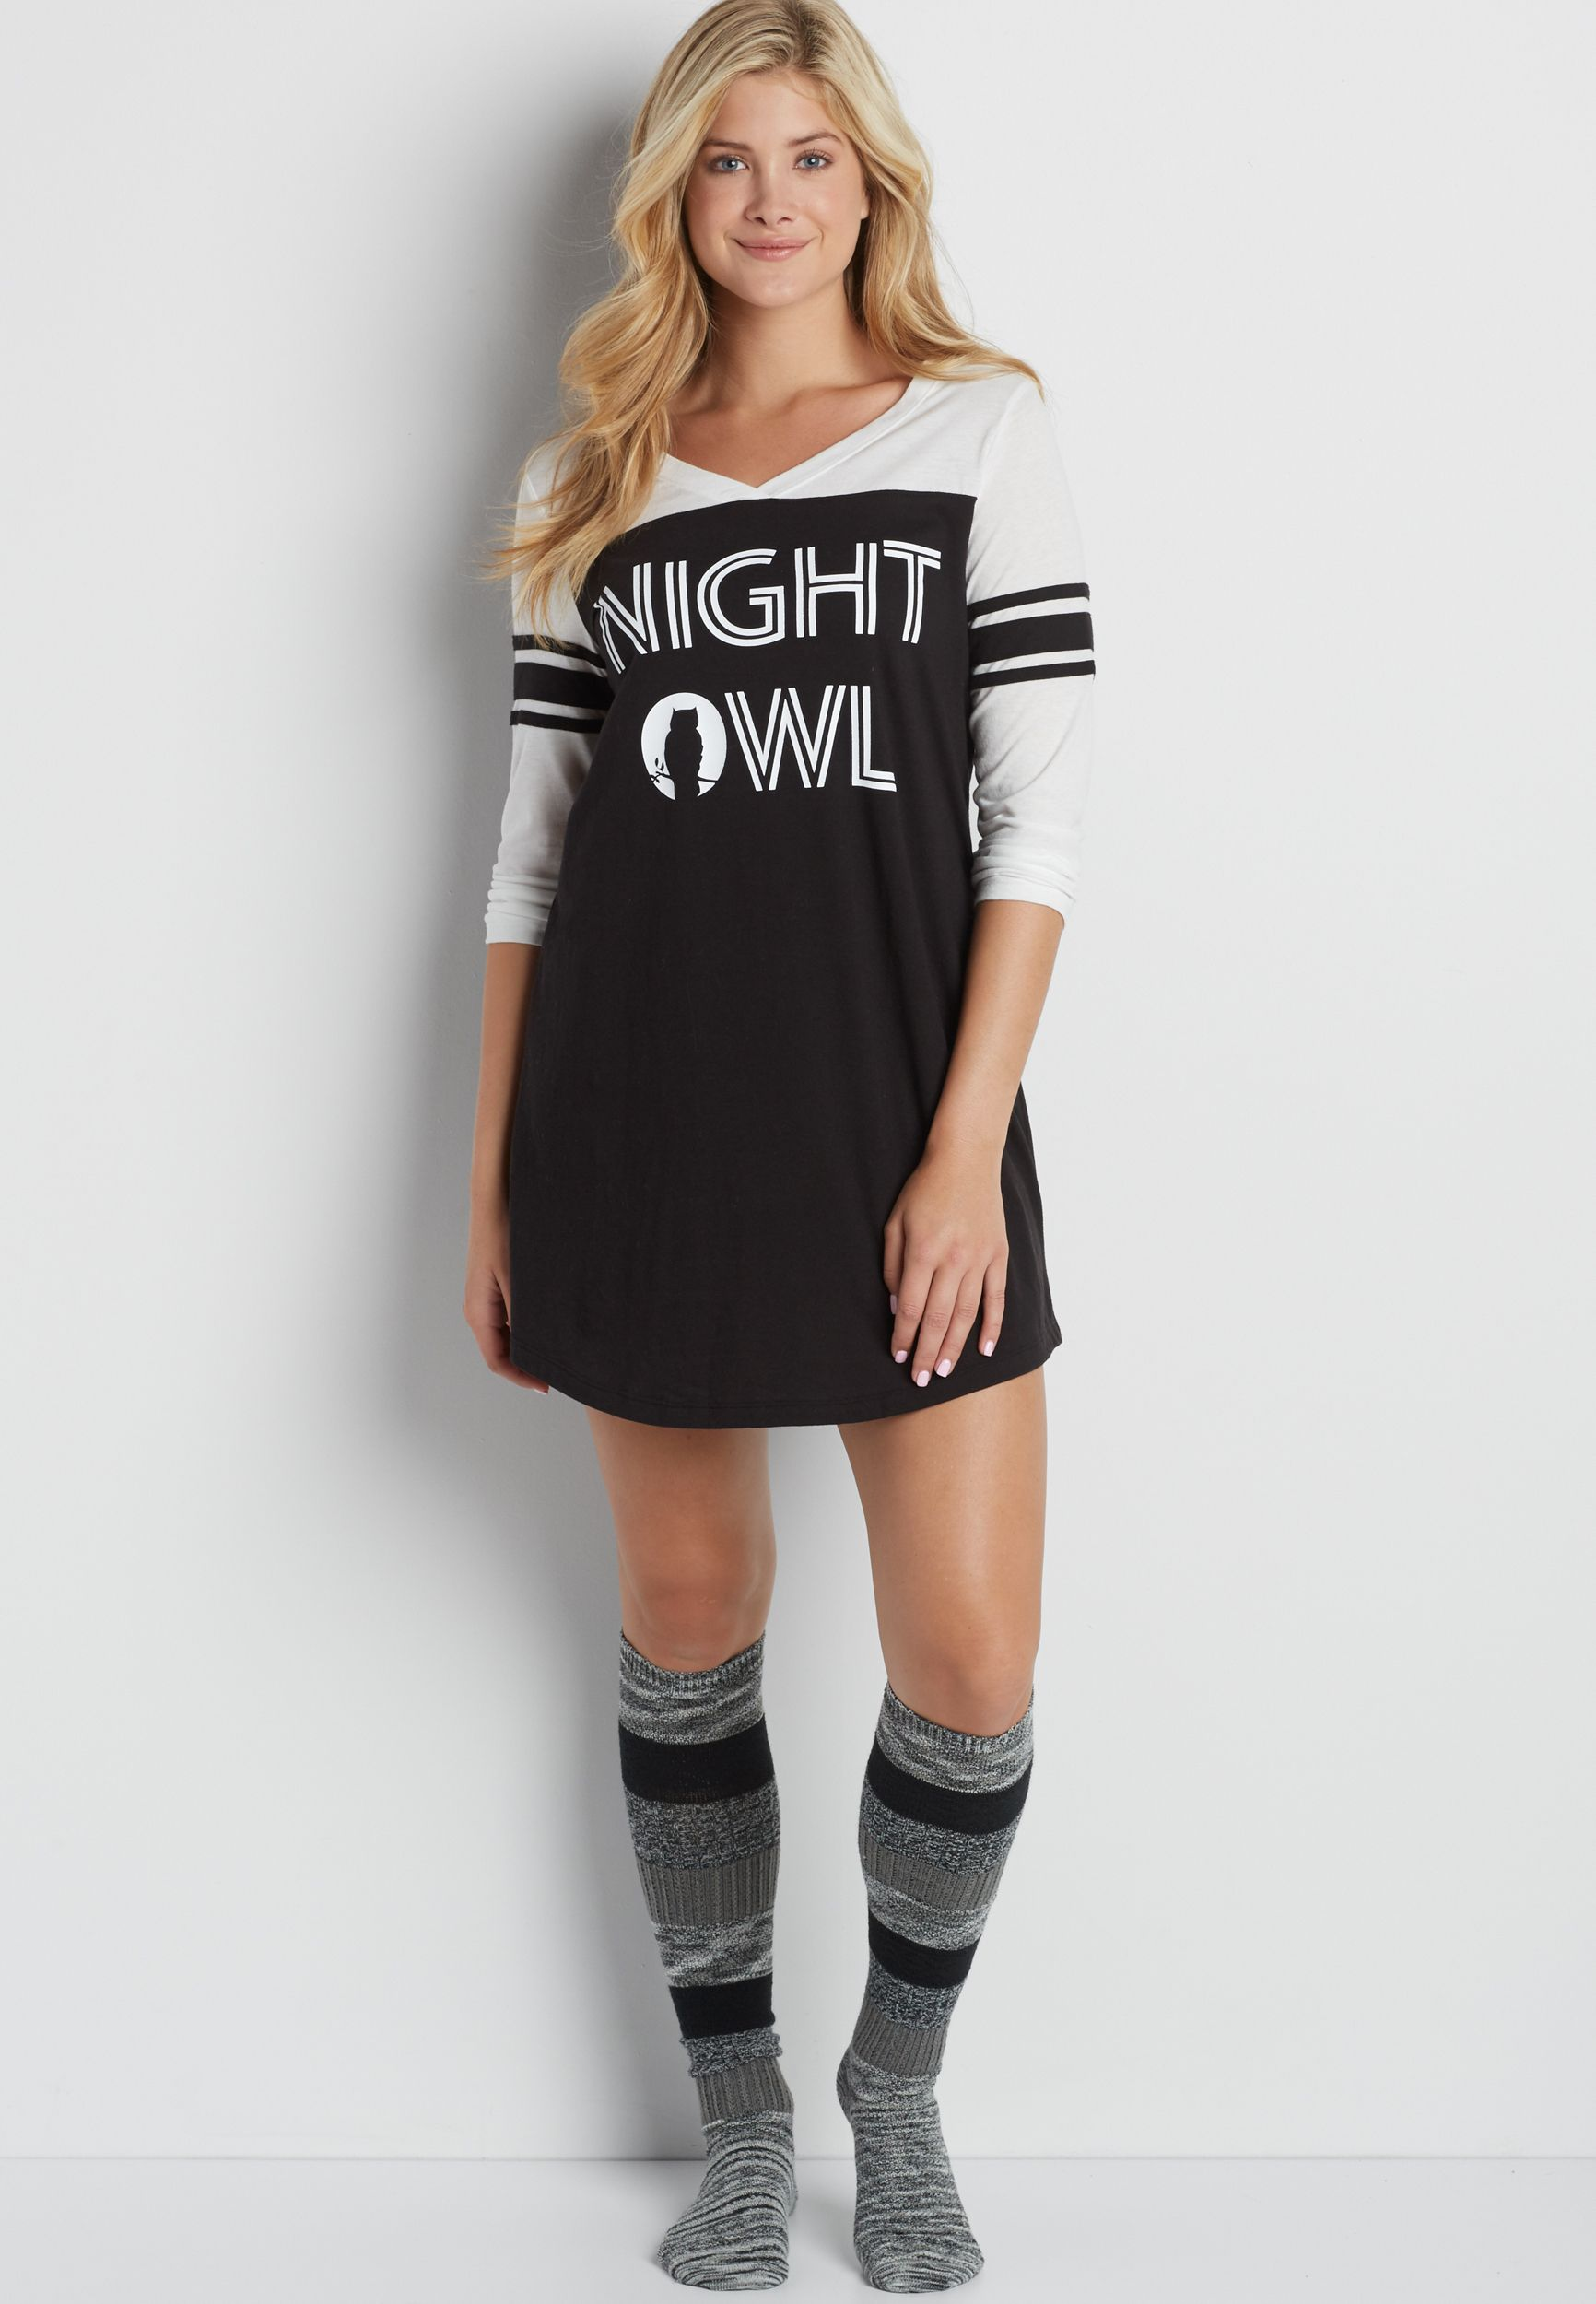 Football Sleep Tunic With Night Owl Graphic In